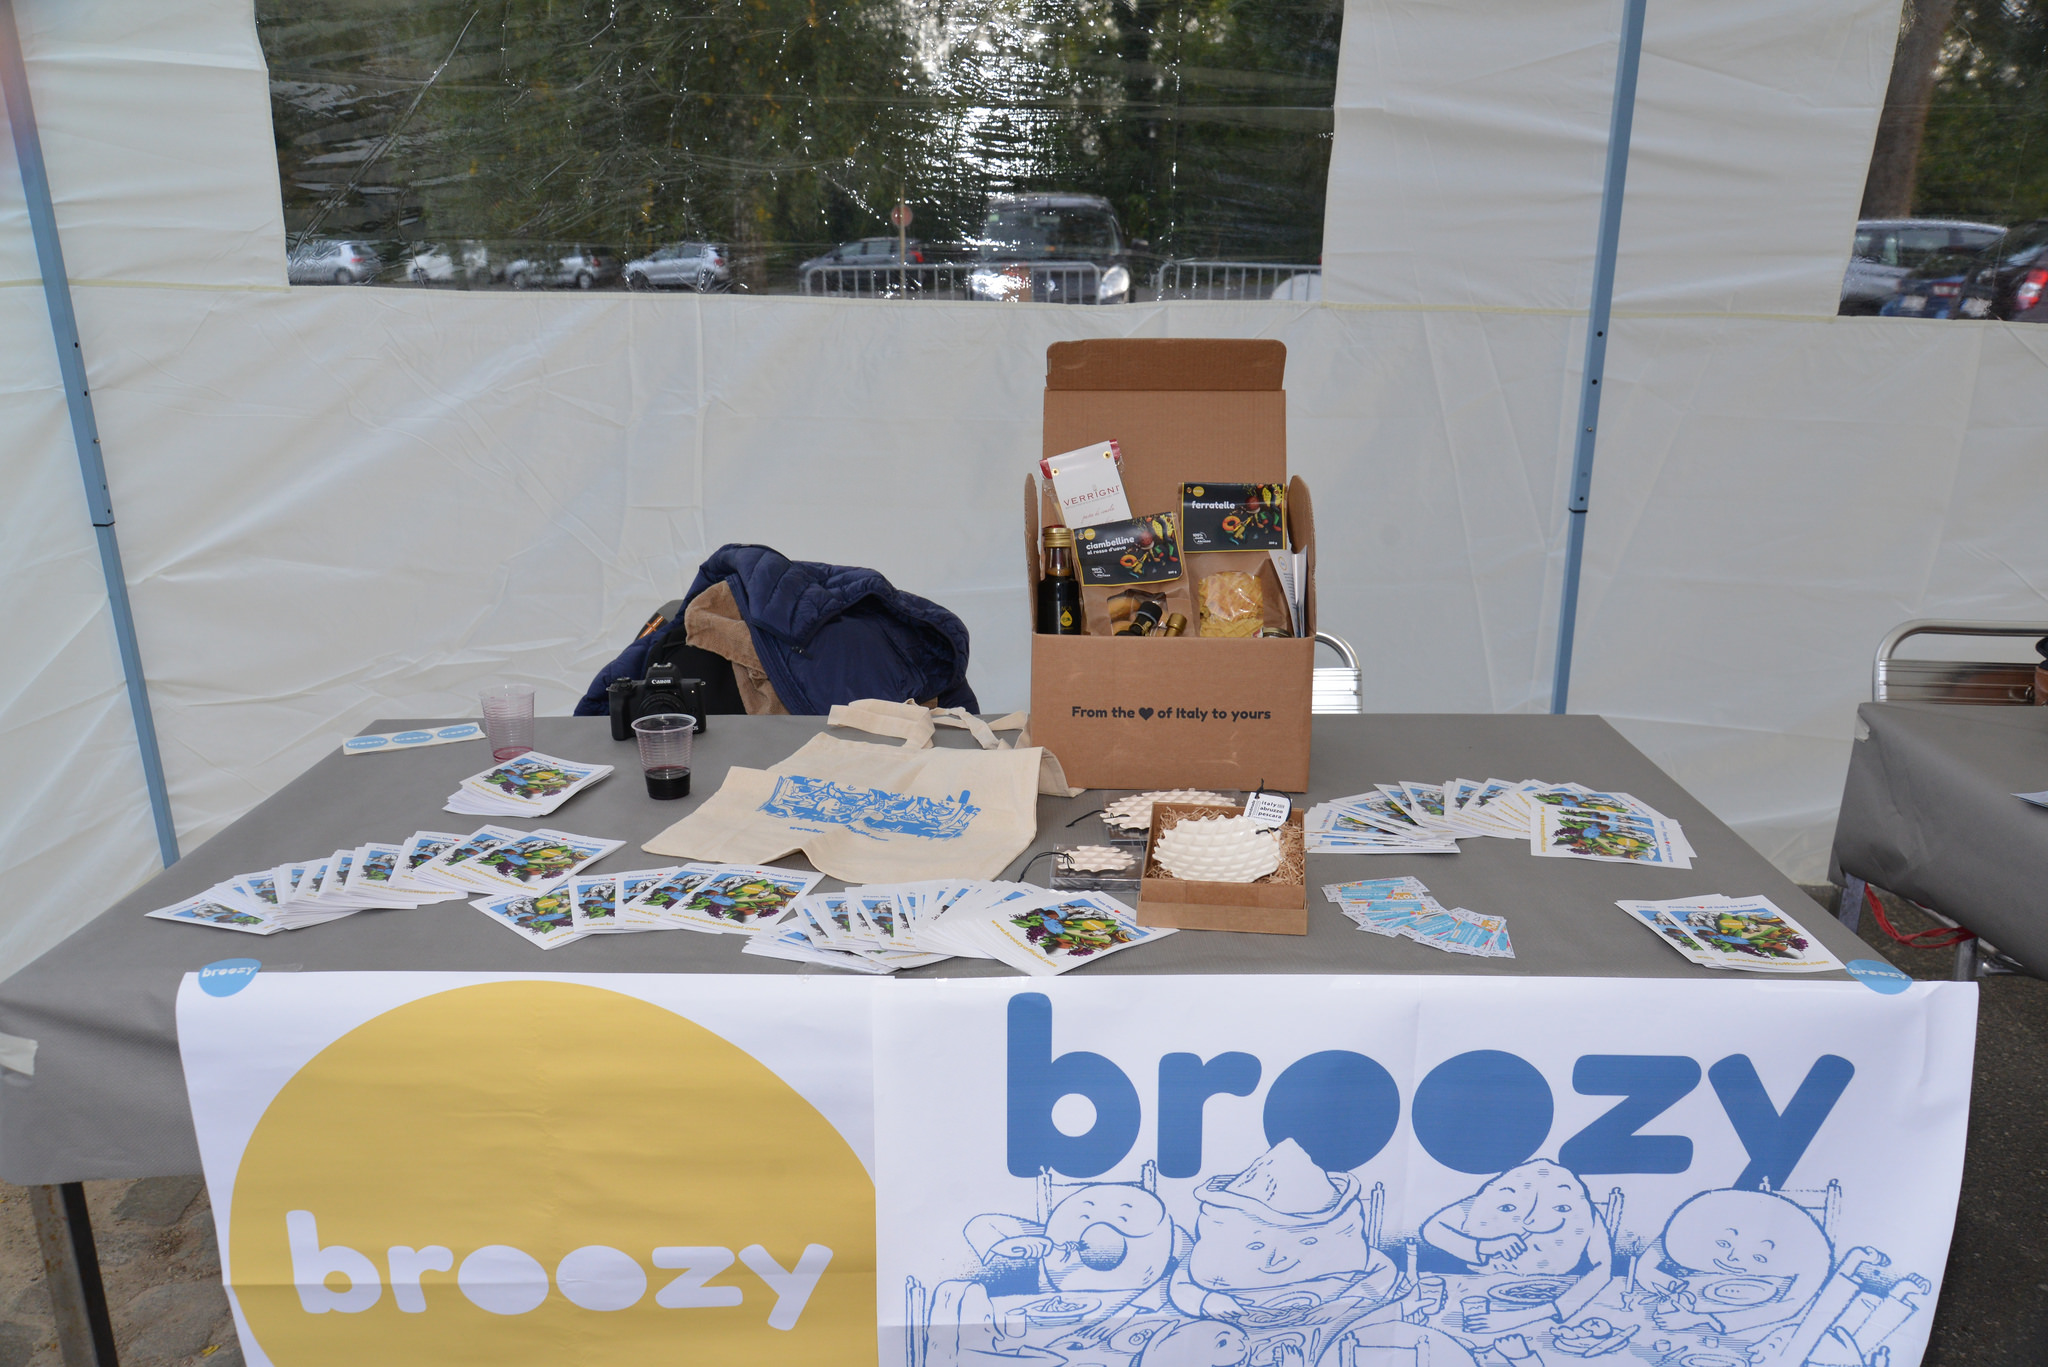 broozy rostaland 2018 abrussels bruxelles